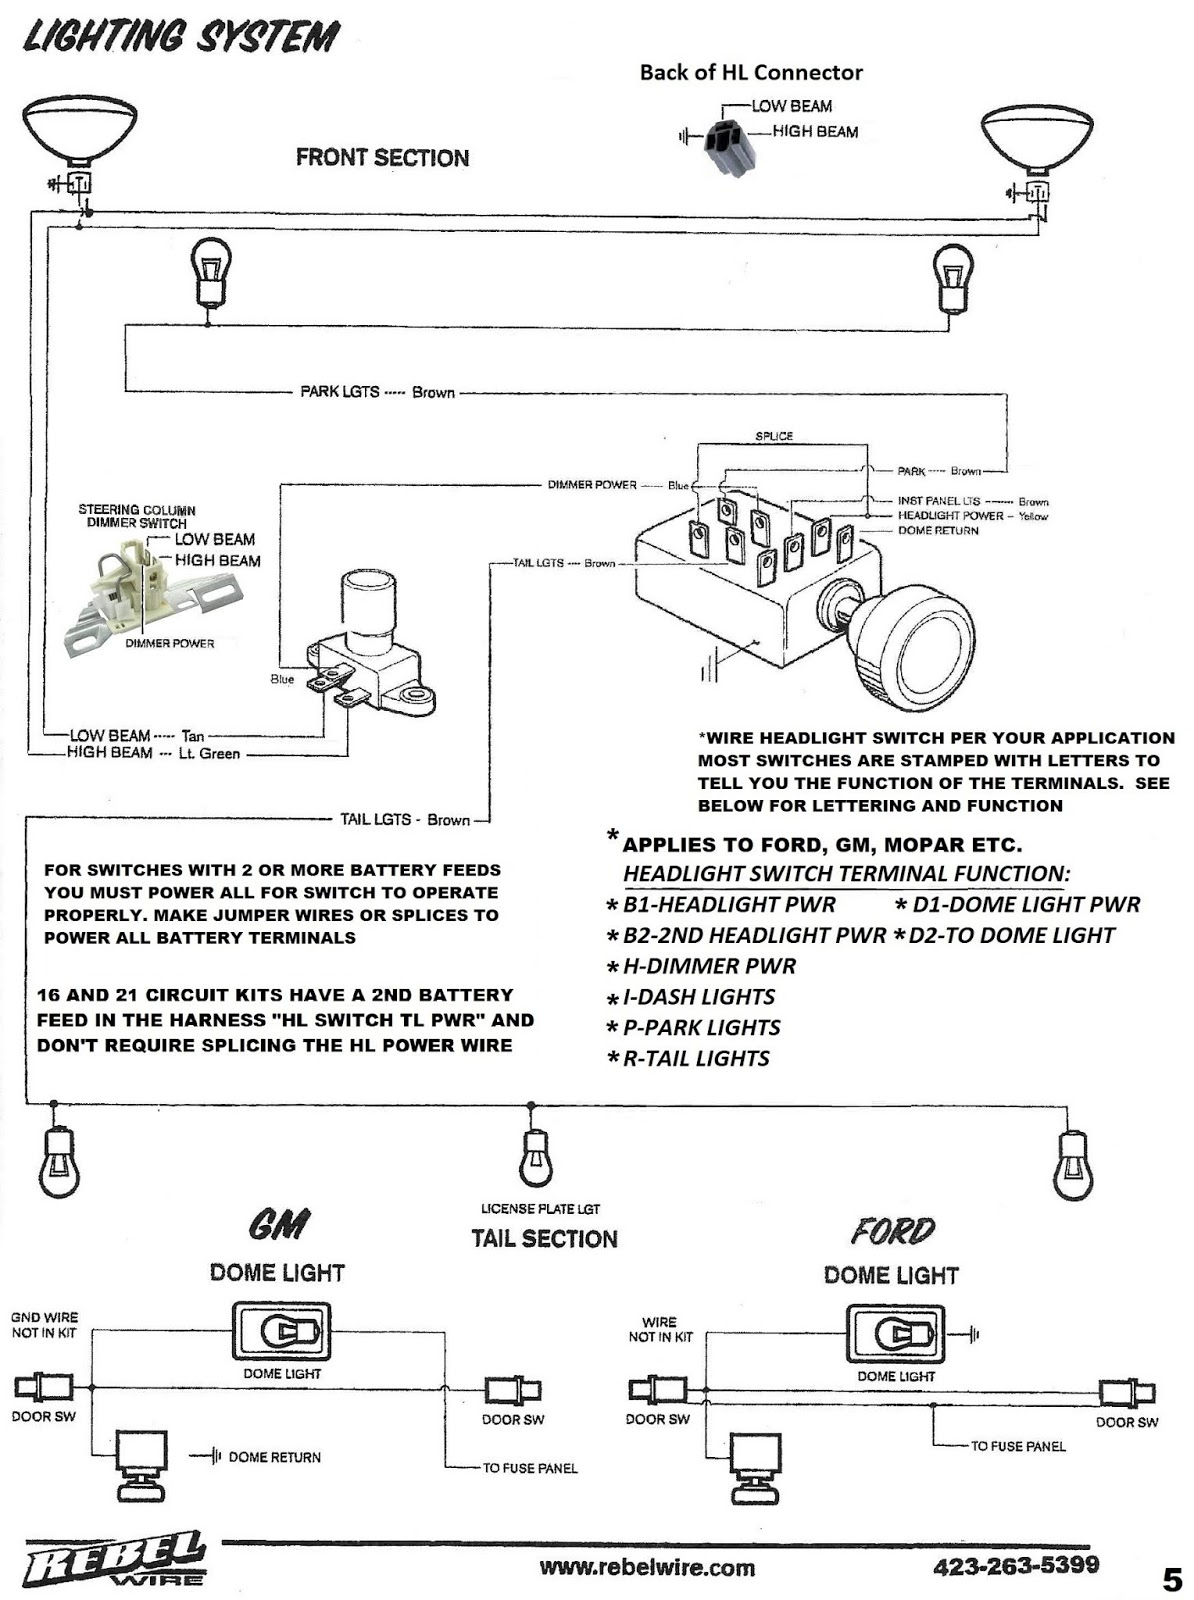 medium resolution of street rod wiring diagram vp instrument cluster help asapl3vndashwiringjpg wiring diagramdome light wiring diagram together with chevy dome light wiring